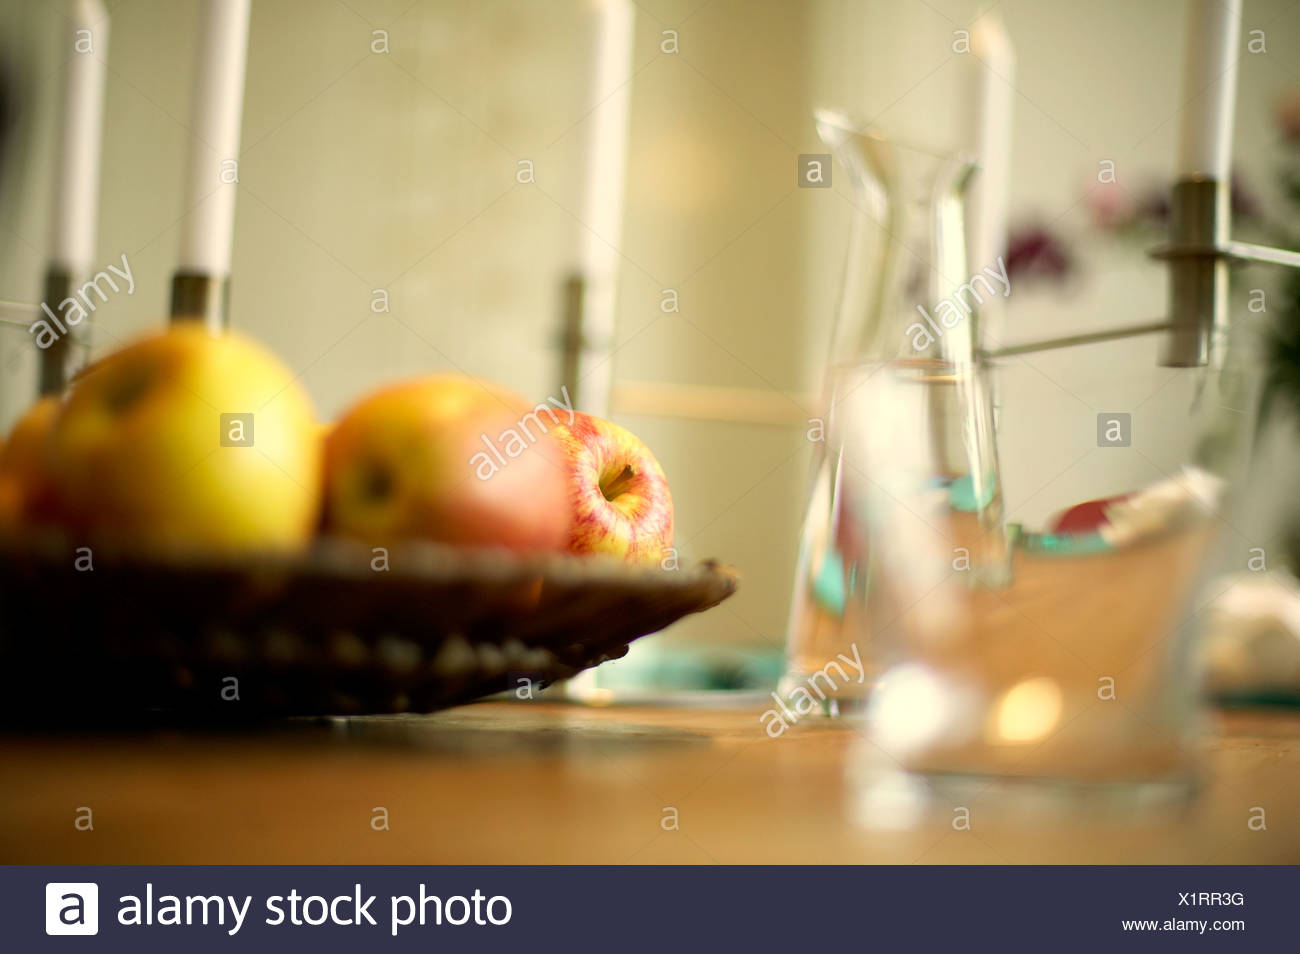 Glasses and fruit bowl on a table - Stock Image